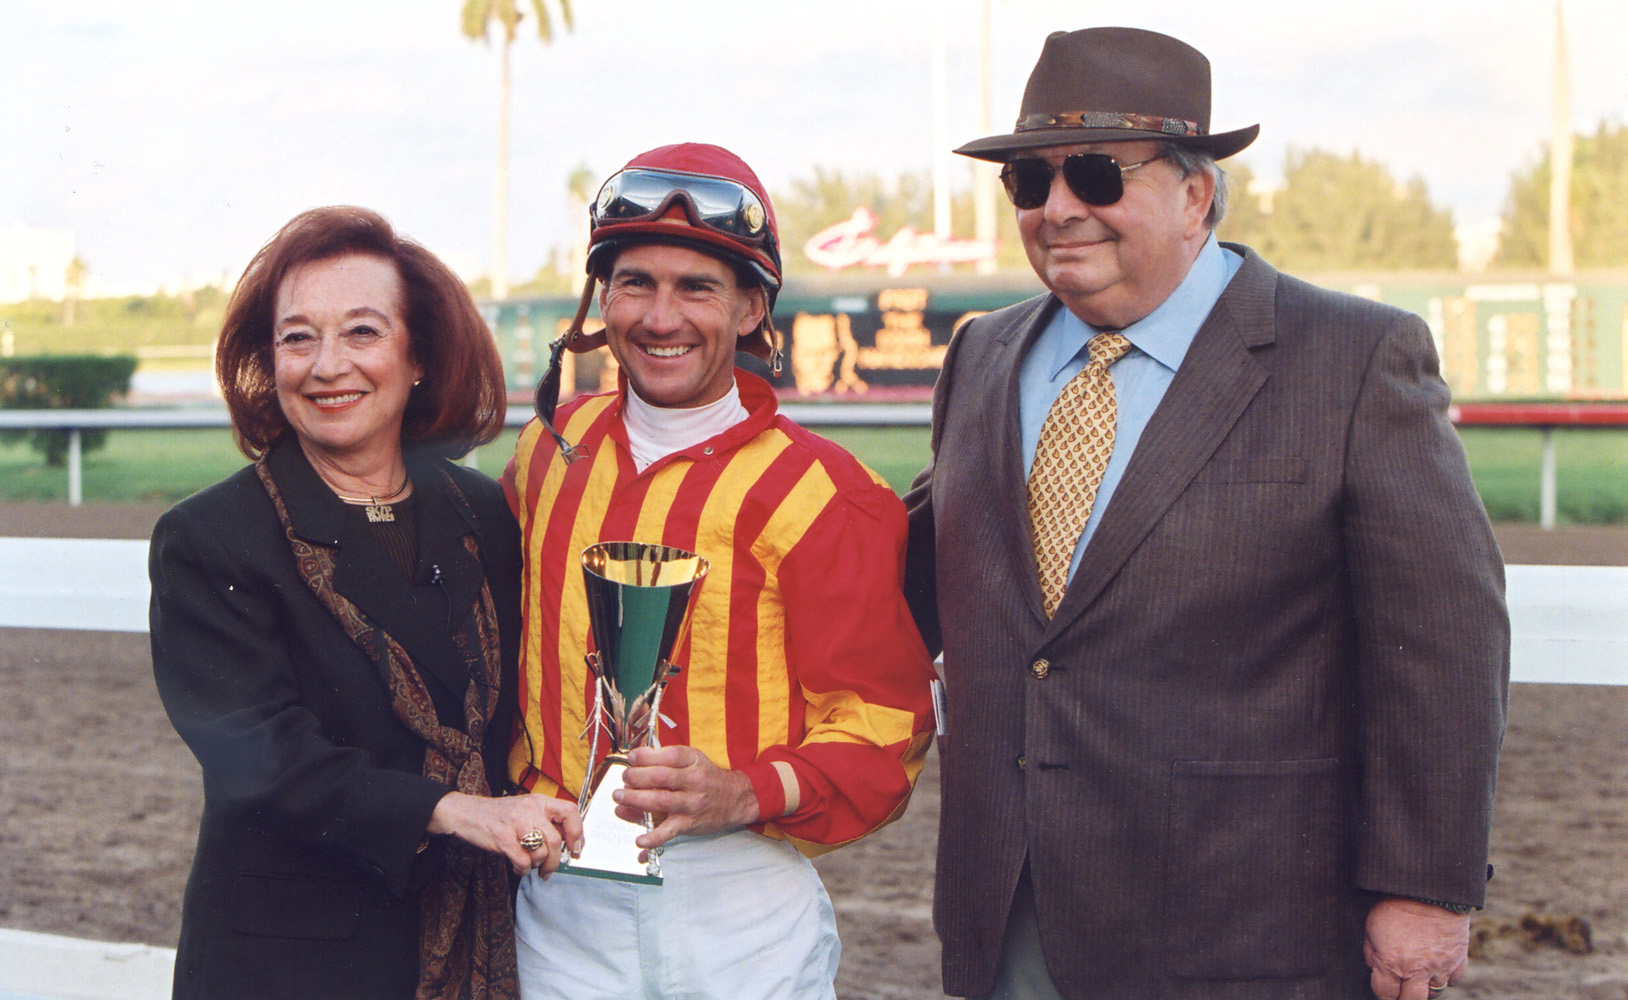 Sonny and Caroyln Hine with Jerry Bailey at the trophy presentation at Gulfstream Park in February 1998 (Barbara D. Livingston/Museum Collection)